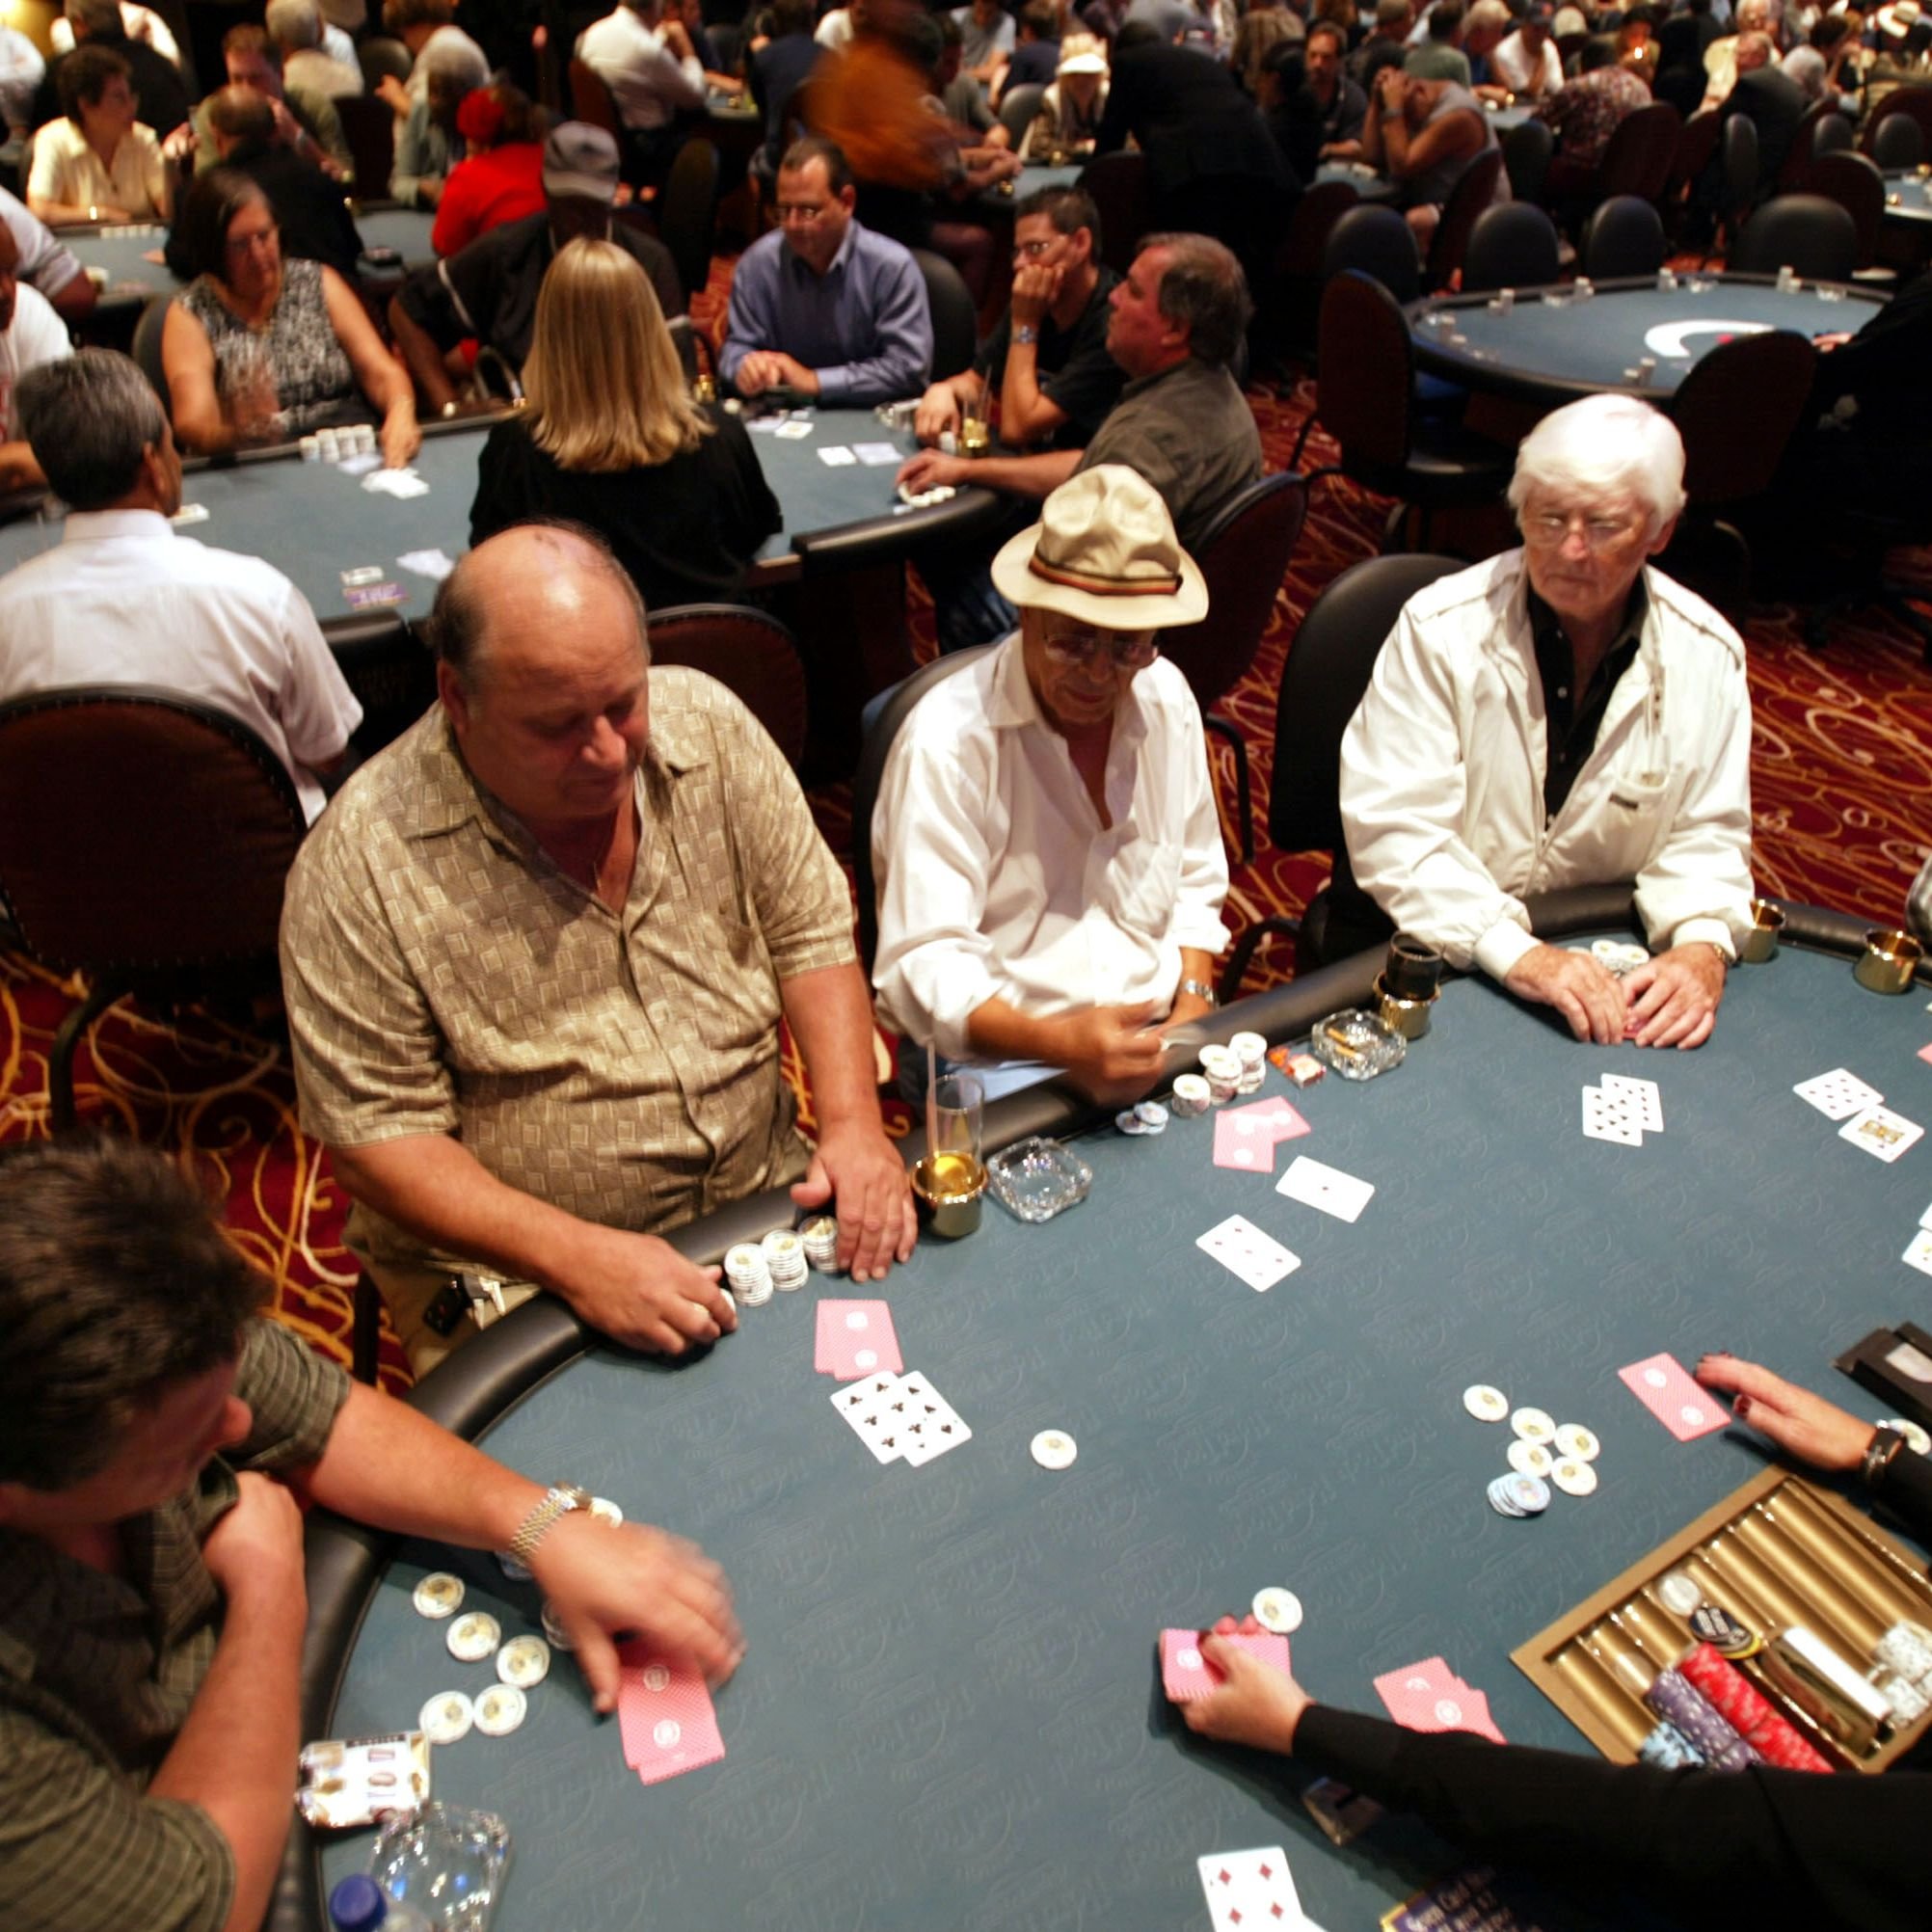 Casino Poker Rules And Etiquette For The Card Room